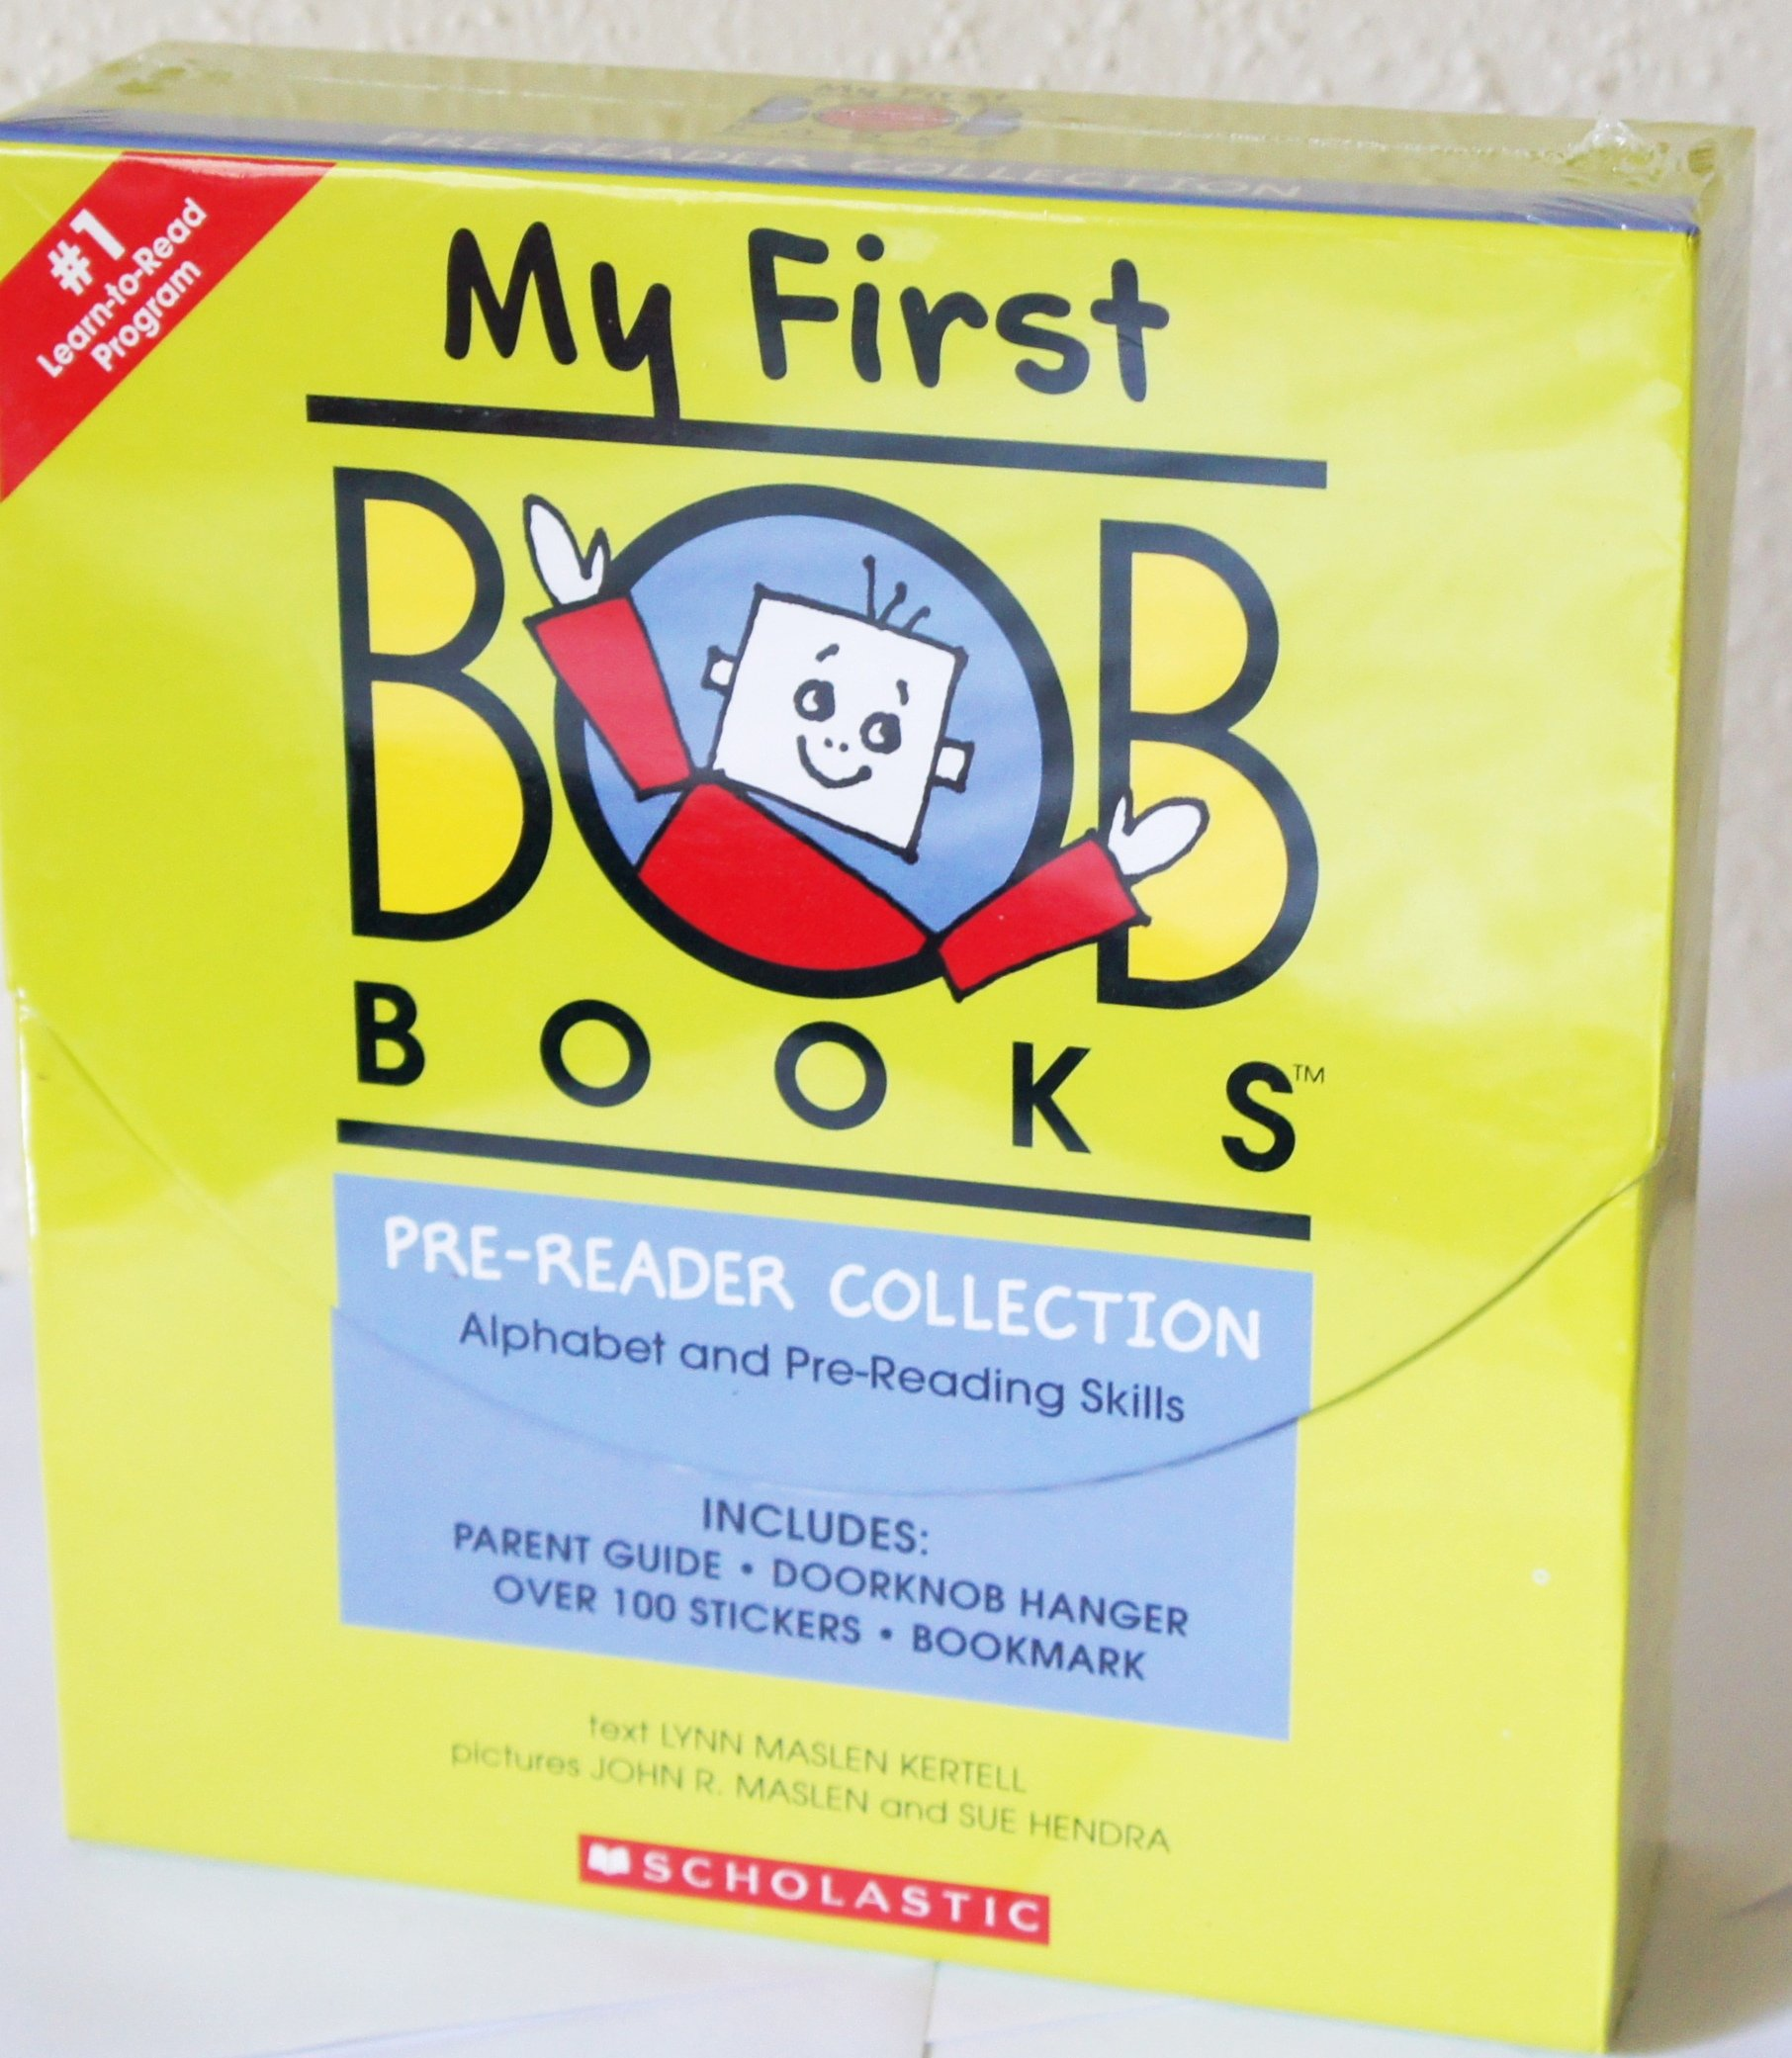 My First BOB Books COLLECTION Box Set [Alphabet & Pre-reading Skills] [24 Books] (Age 2 and Up)